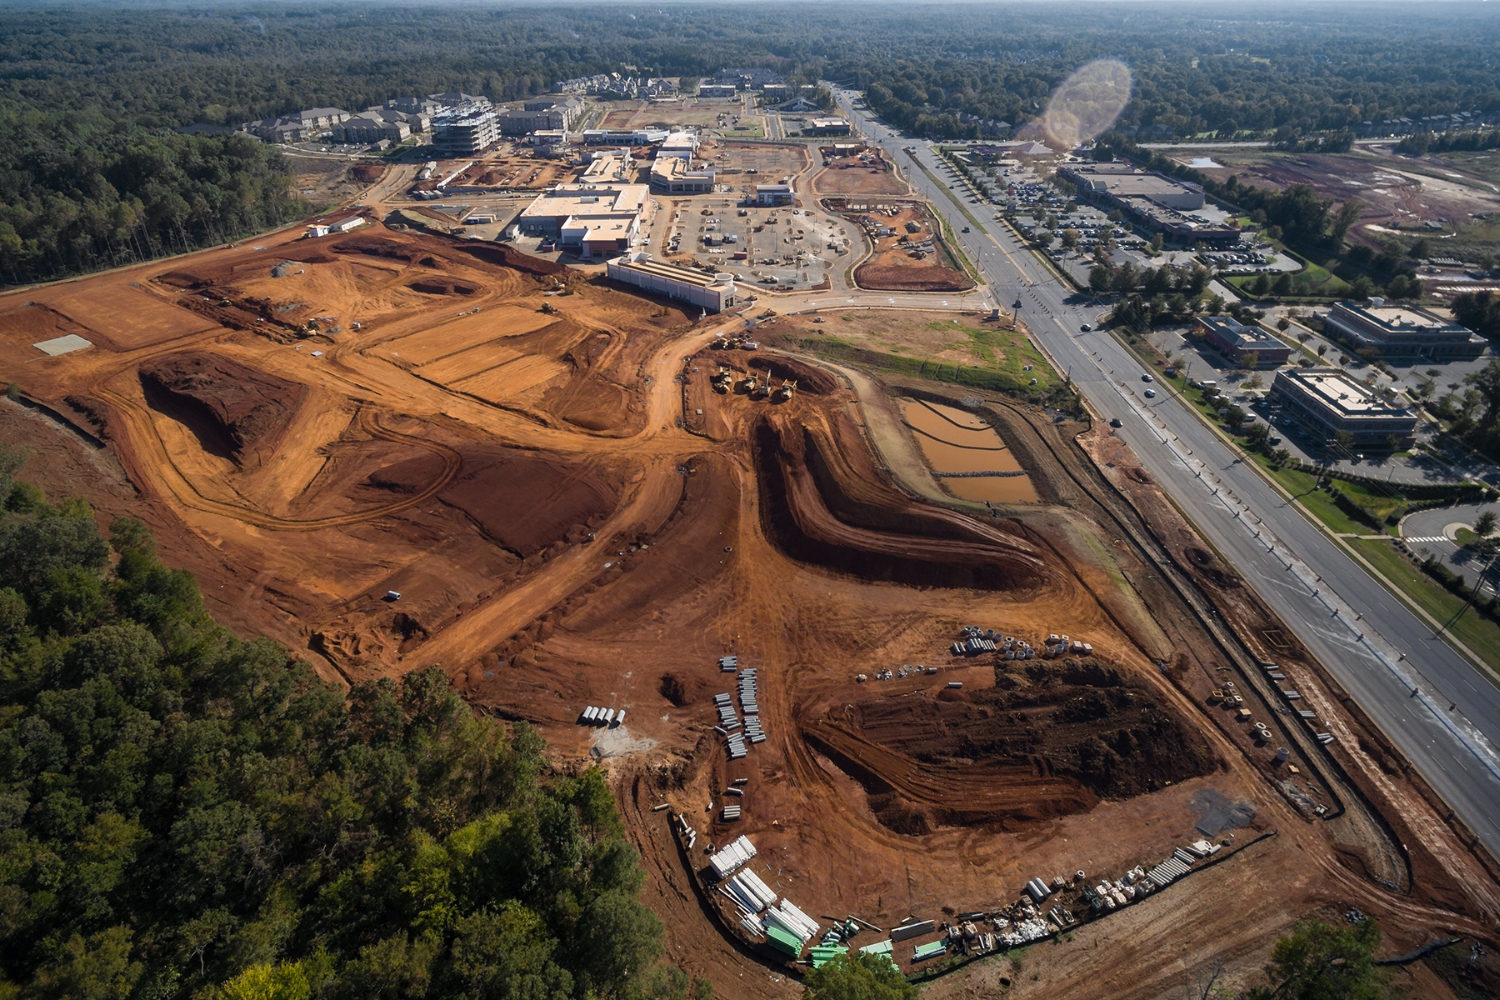 aerial view of crescent providence farms. the site is located right next to the almost complete    Waverly    mixed-use development.